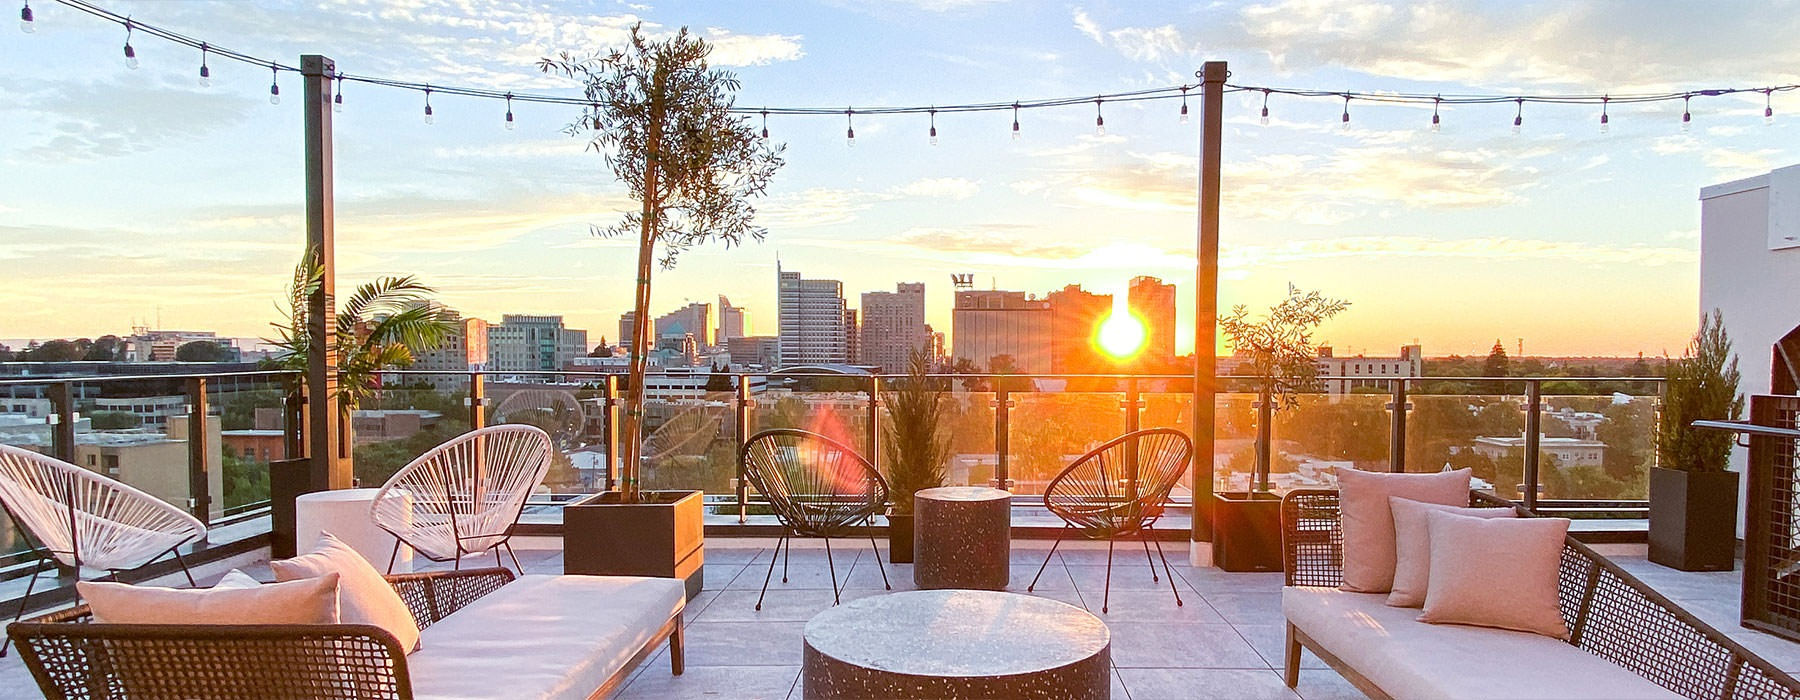 Rooftop deck with a view of downtown Sacramento